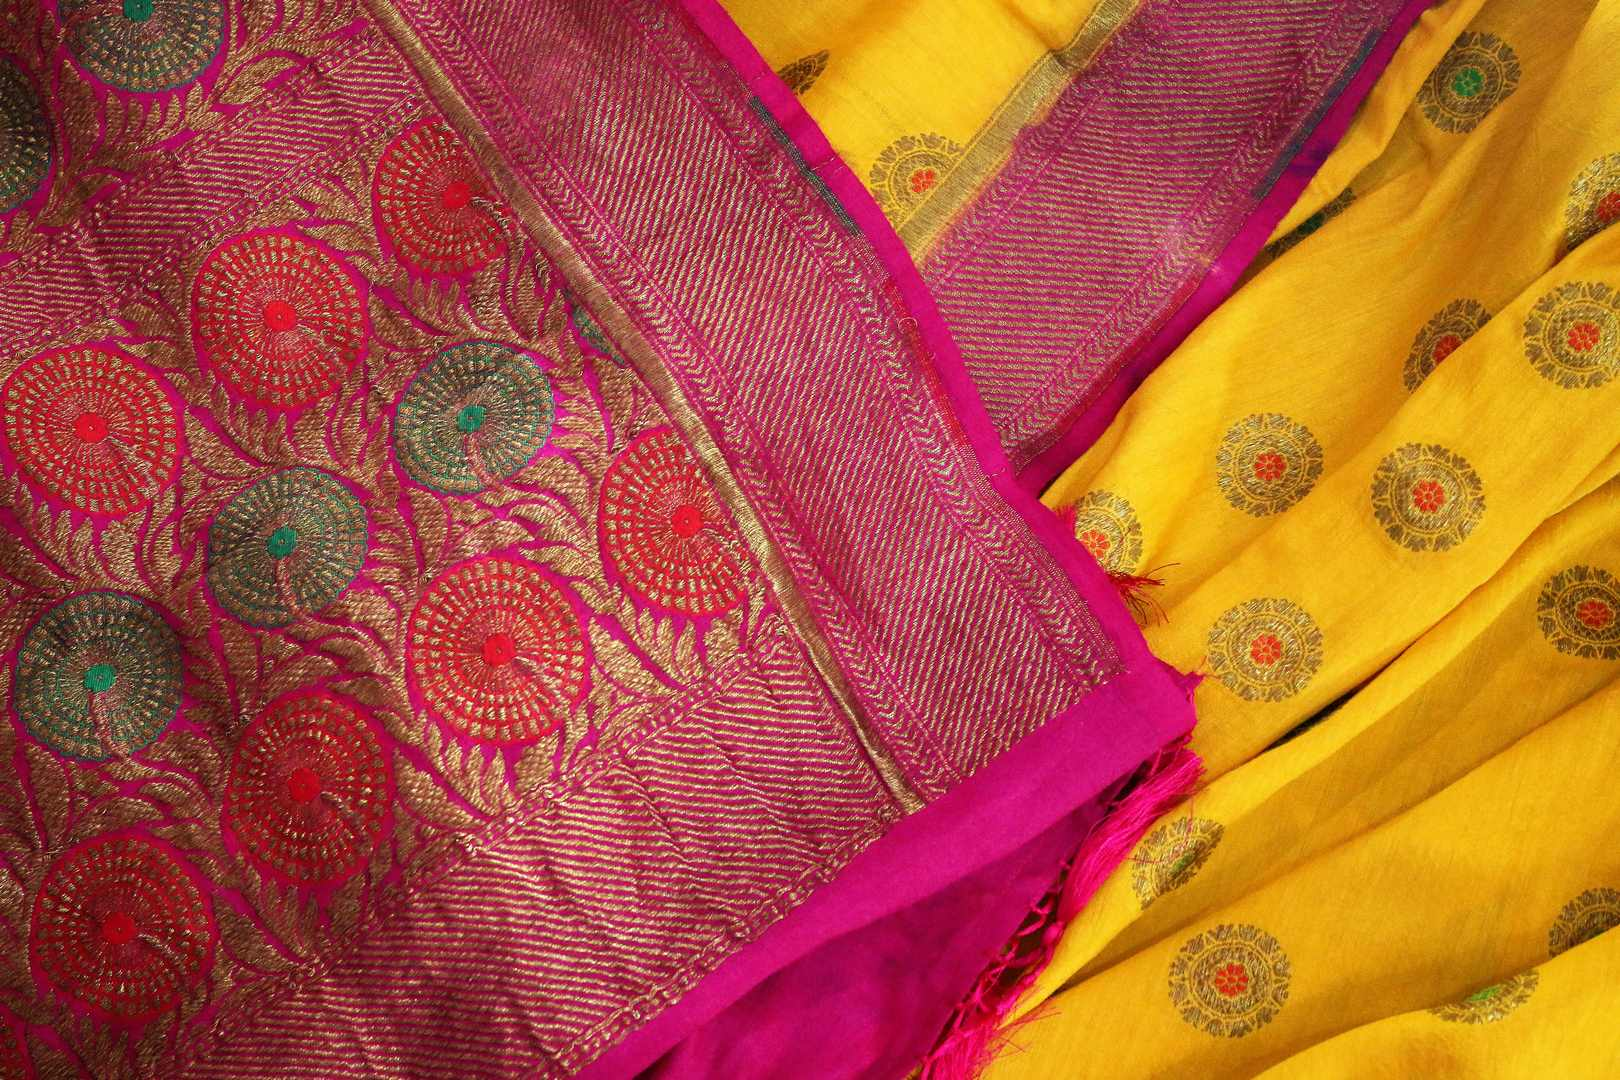 Your perfect wedding ensemble in traditional yellow and red combination with zari detailing is oh so dreamy. Indulge in this breath-taking muga banarsi silk saree complemented with a heavy woven red pallu and designer red blouse. Shop designer silk sarees, ikkat sarees online or visit Pure Elegance store in USA.-details